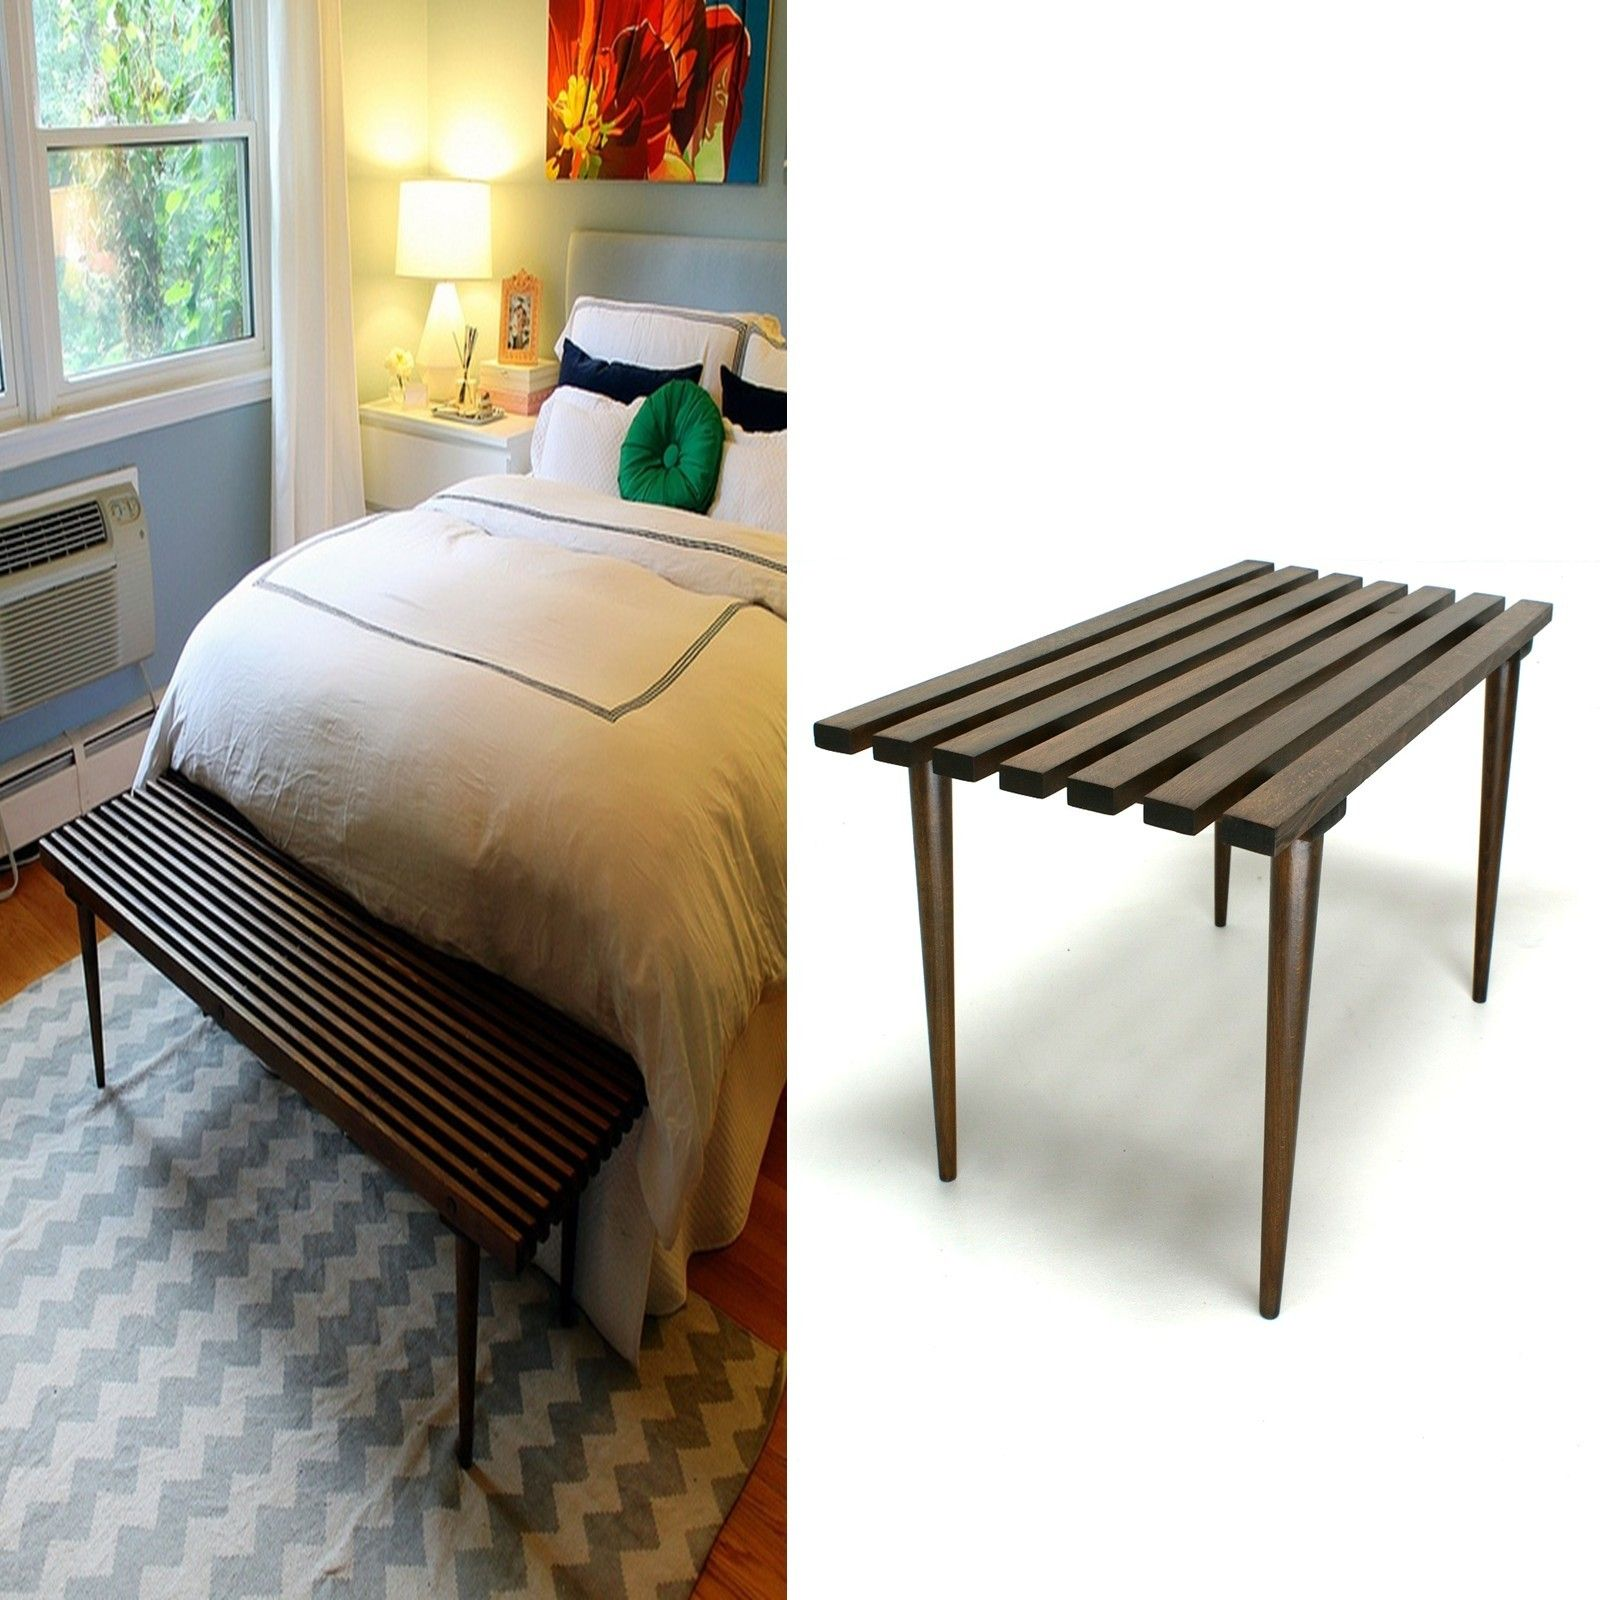 MCM slat bench coffee table $169 Waterford